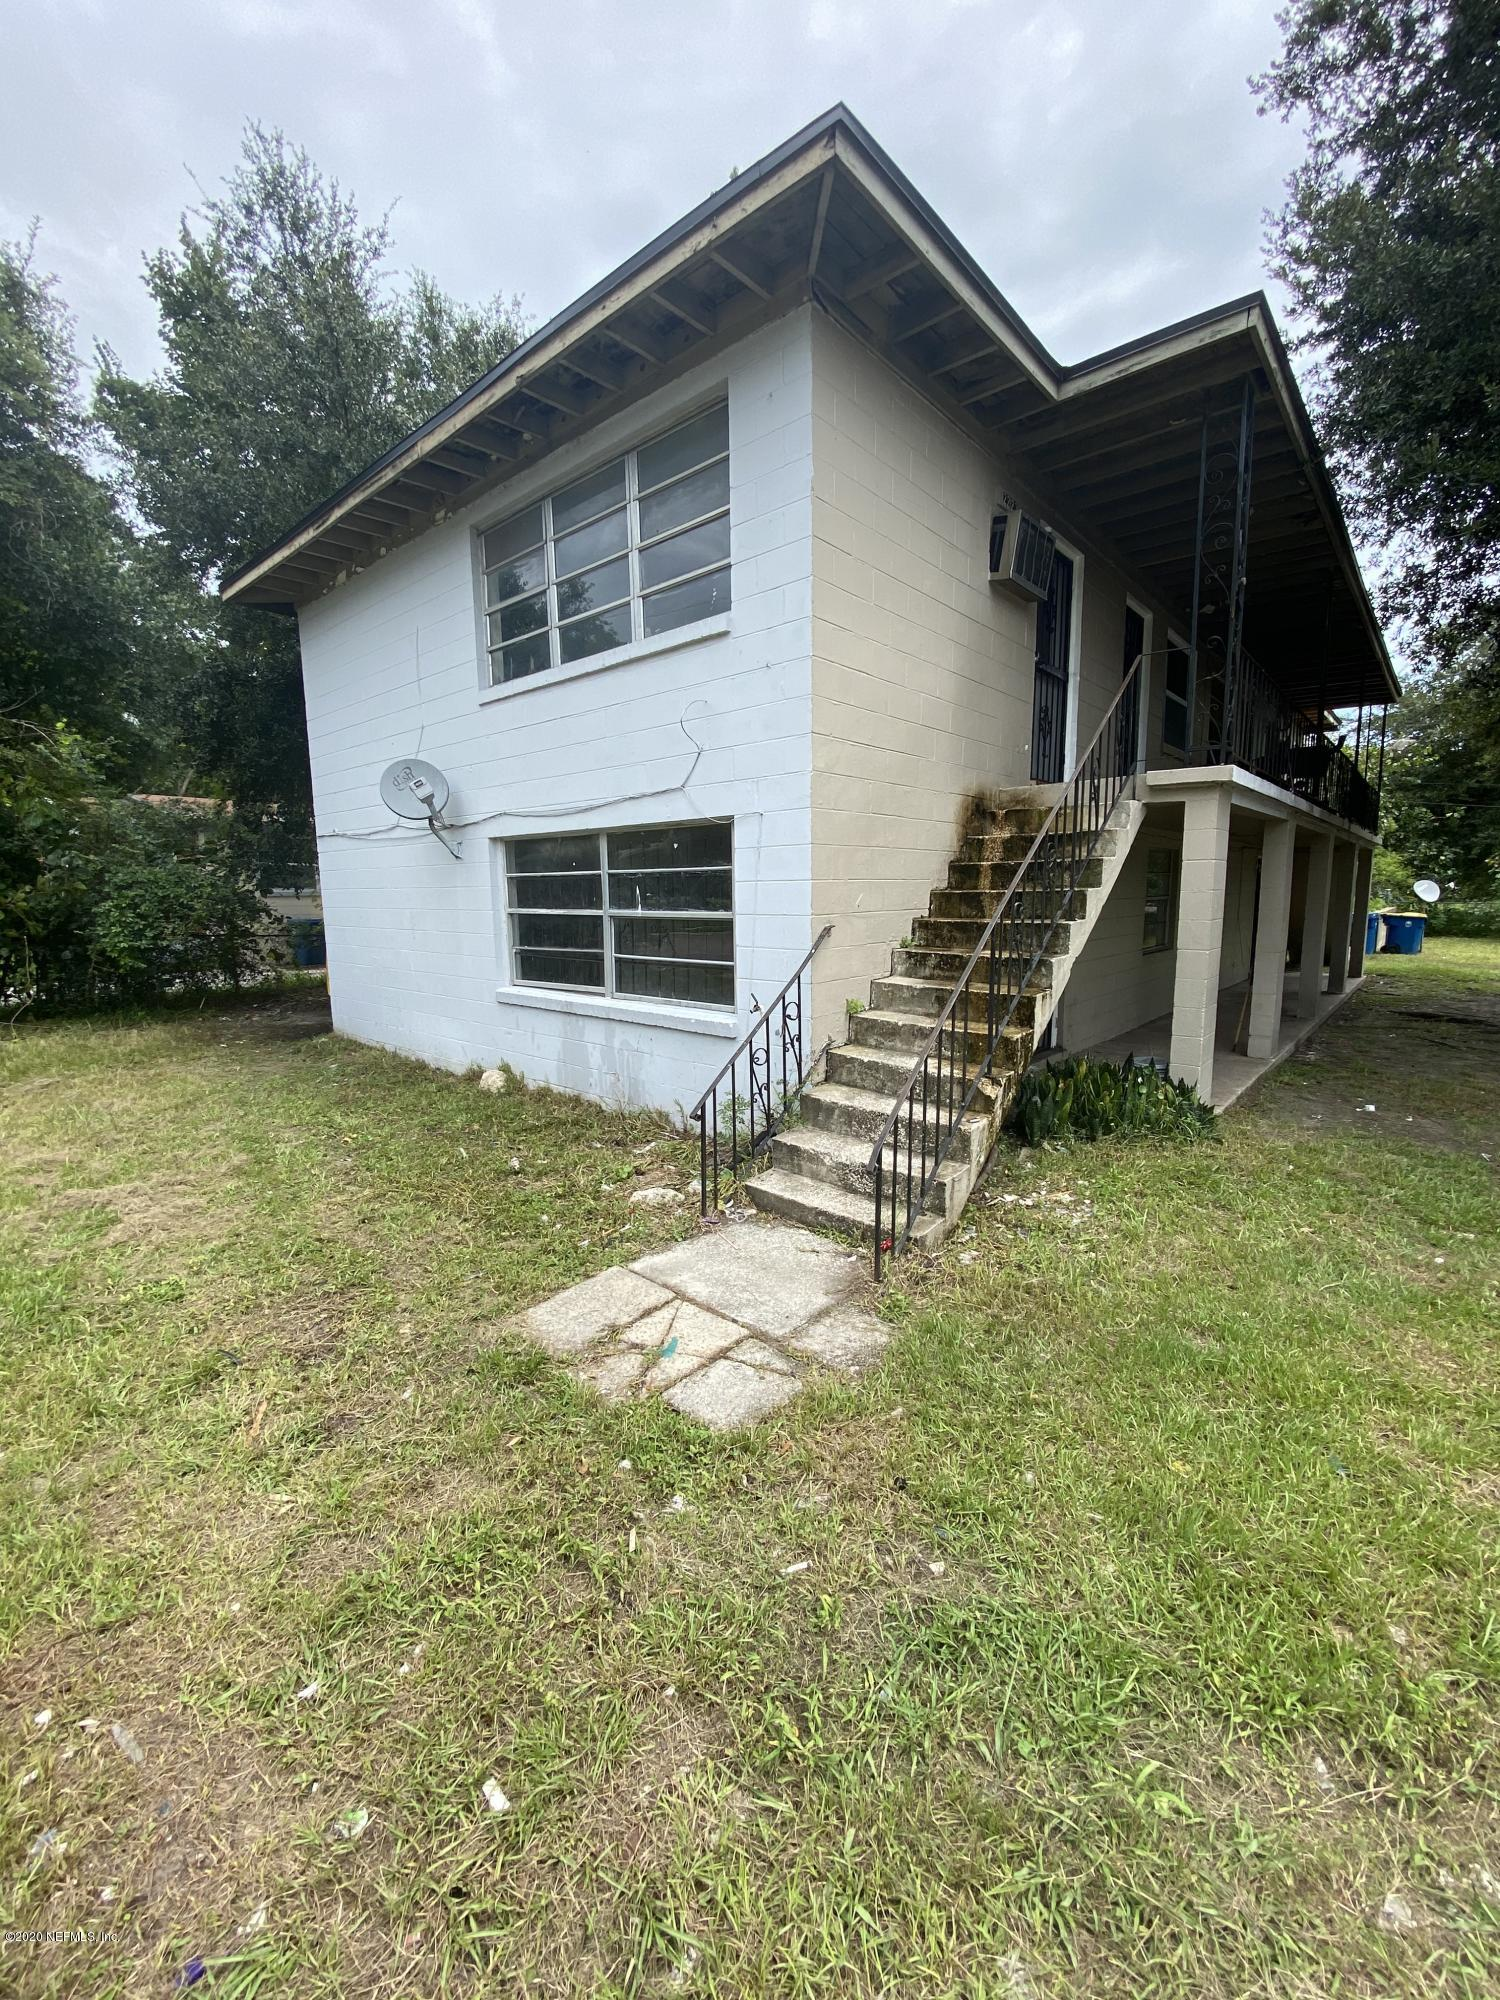 2217 39TH, JACKSONVILLE, FLORIDA 32209, 8 Bedrooms Bedrooms, ,4 BathroomsBathrooms,Investment / MultiFamily,For sale,39TH,1069719